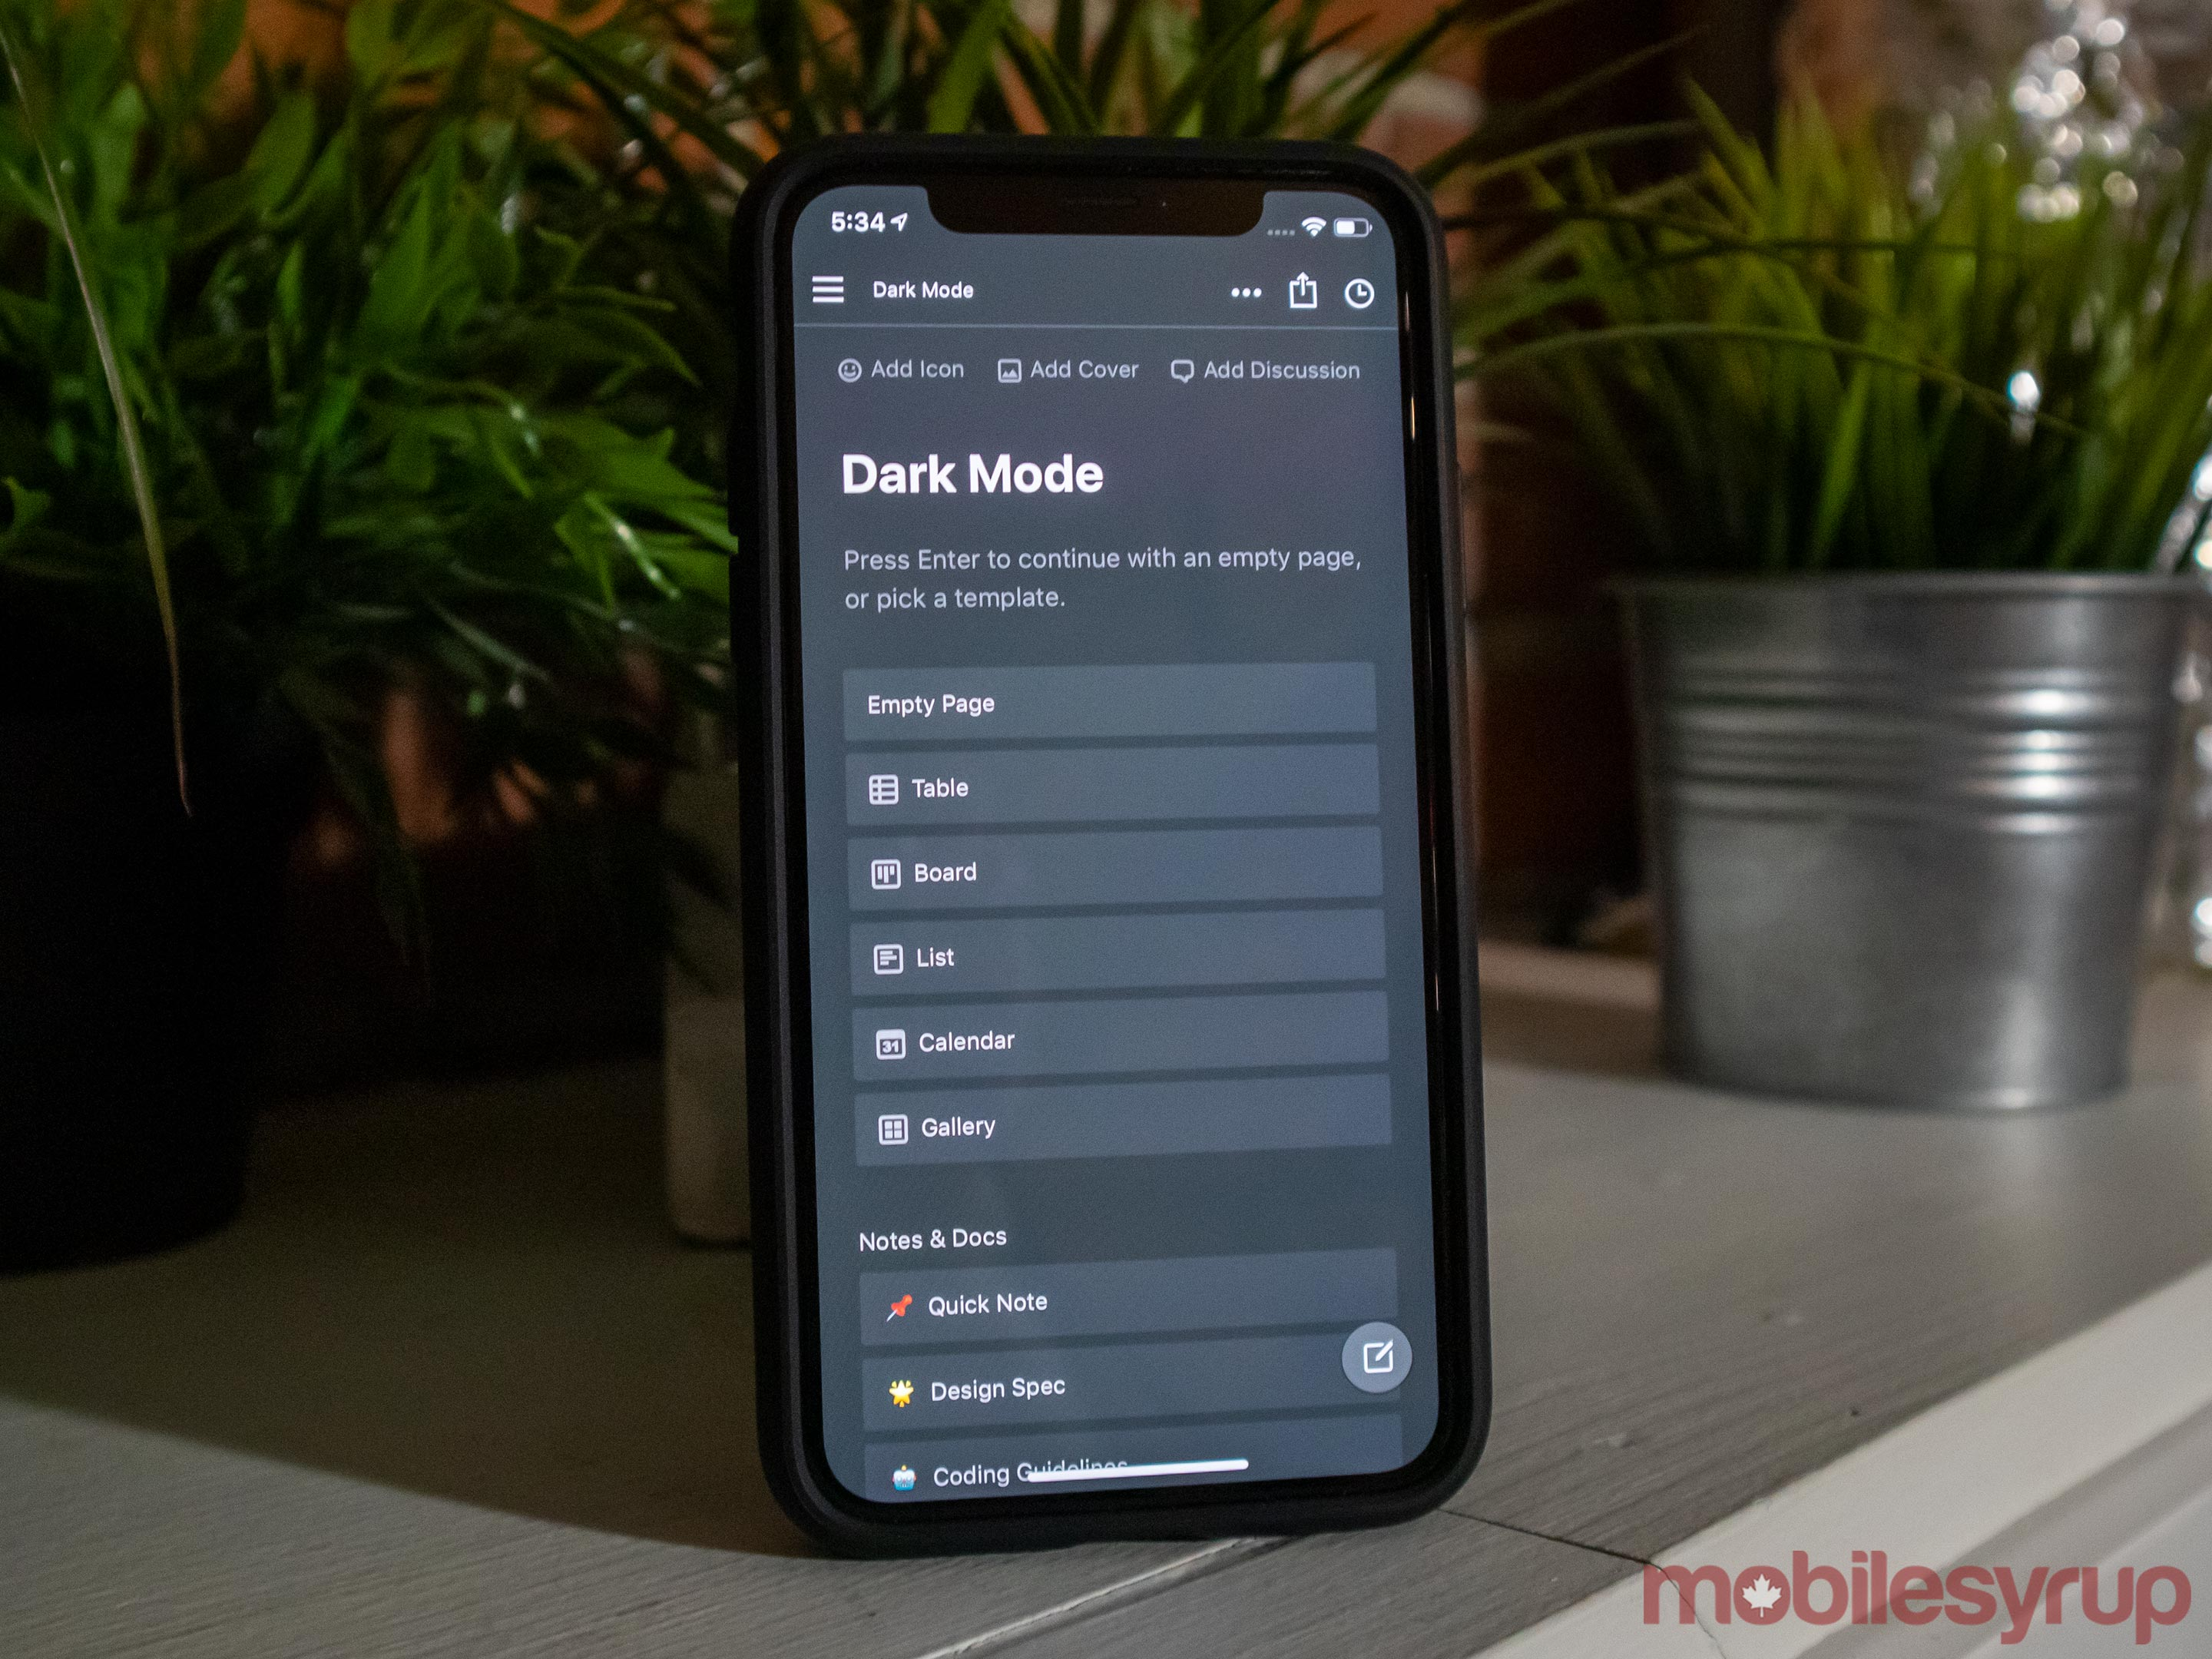 Back in black: how to turn on dark mode and save your battery